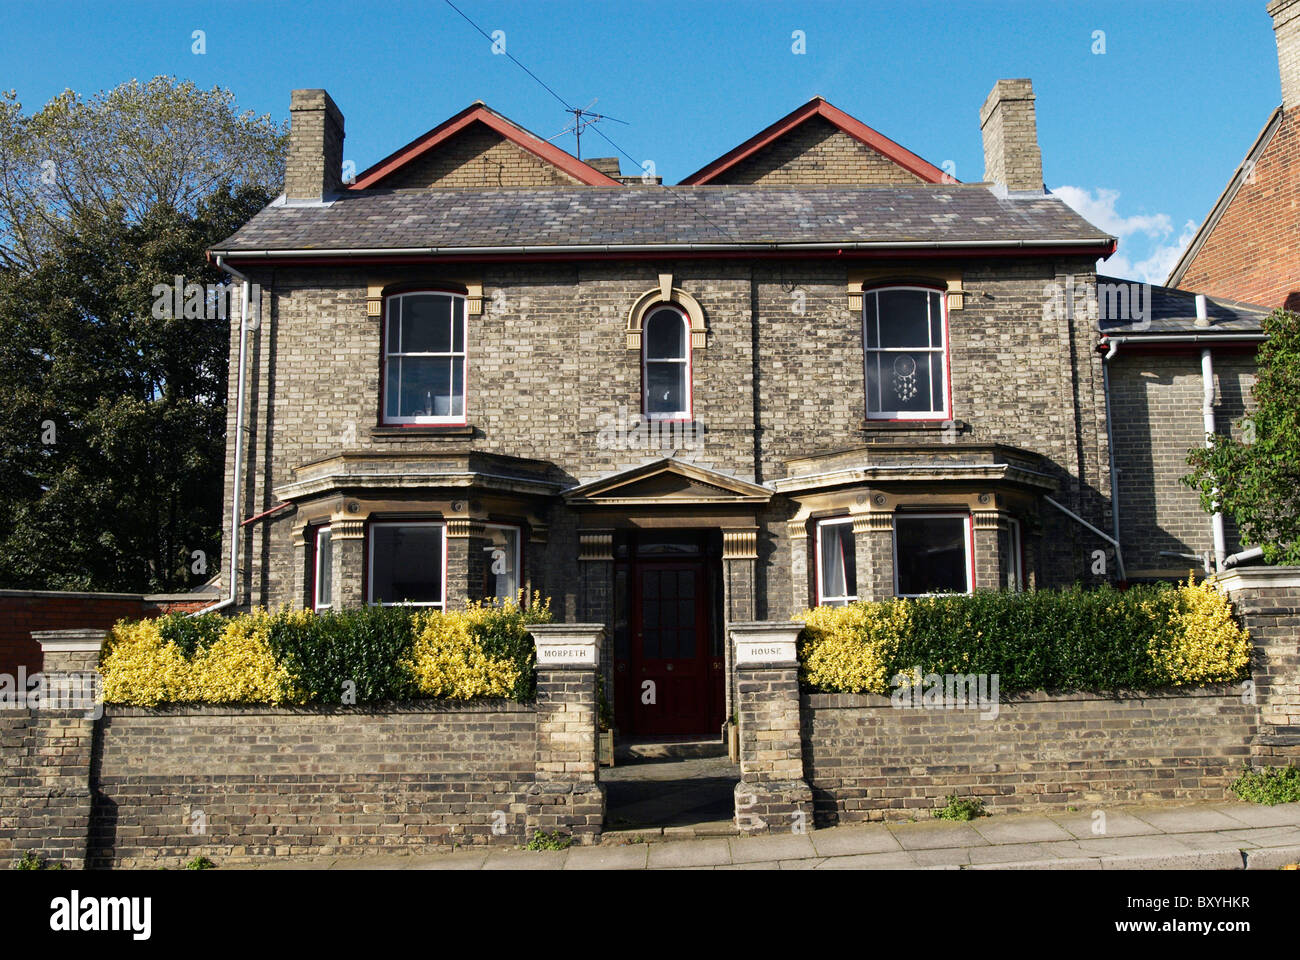 Victorian Double Fronted House England UK Stock Photo